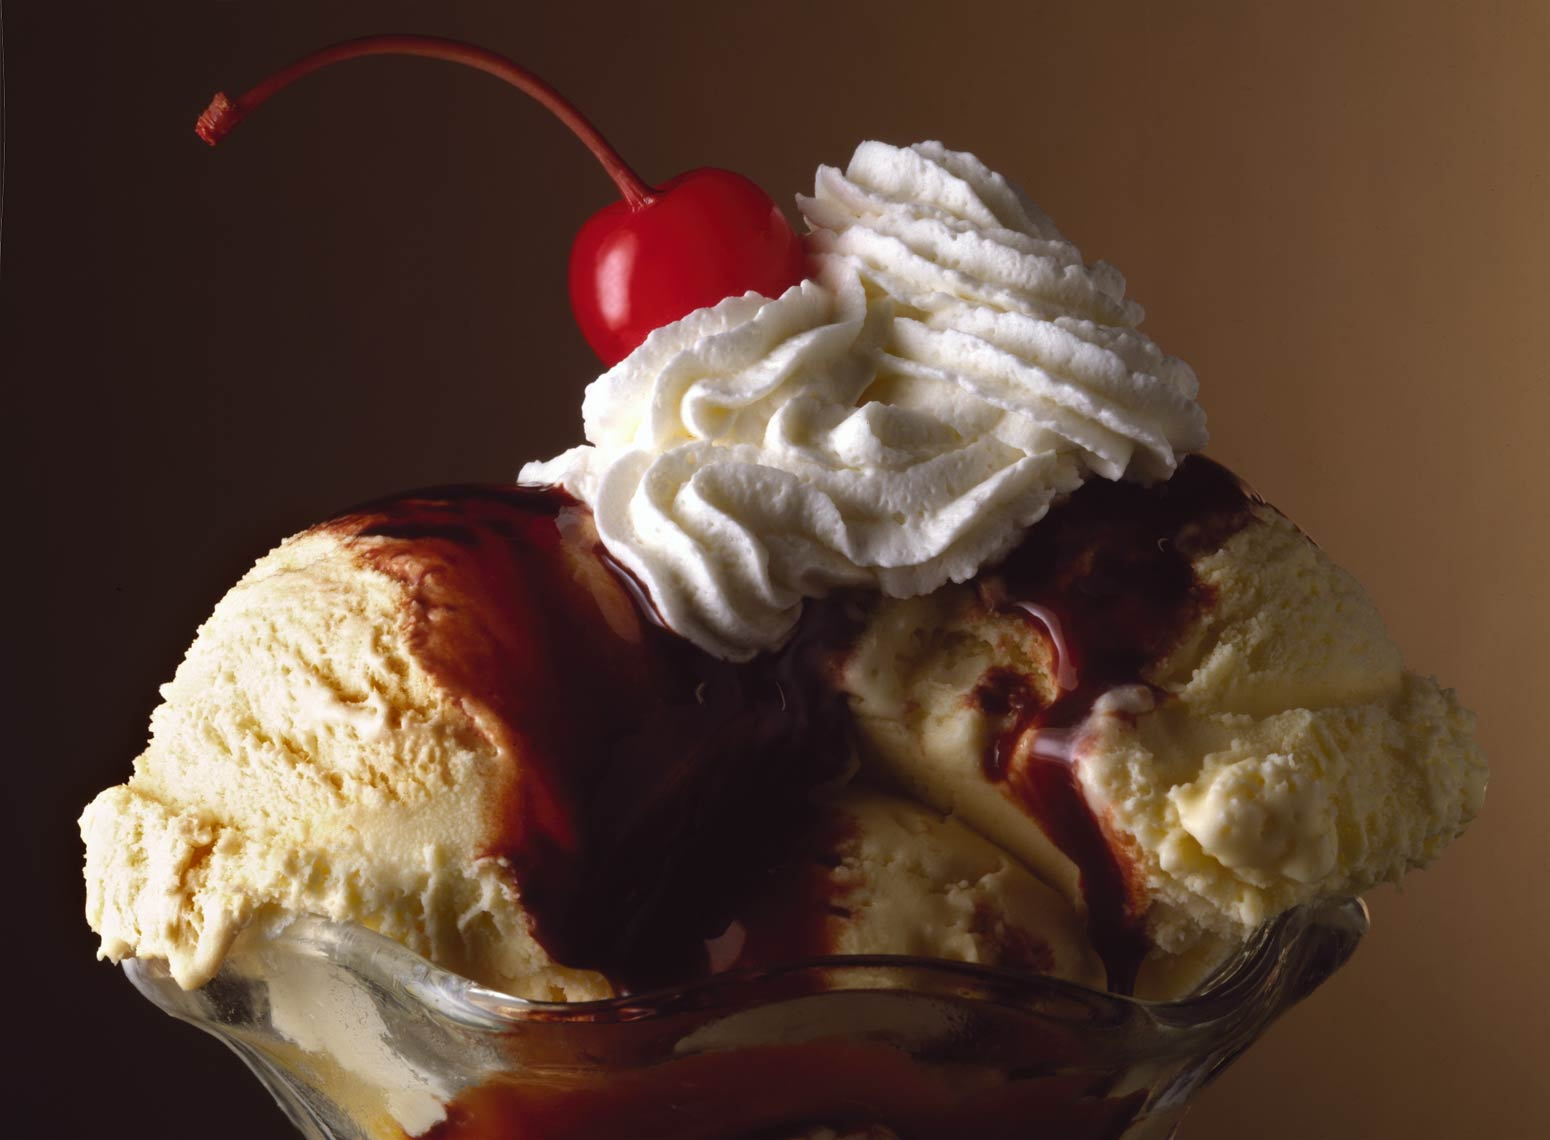 Ice Cream Sundae with chocolate sauce and whipped cream